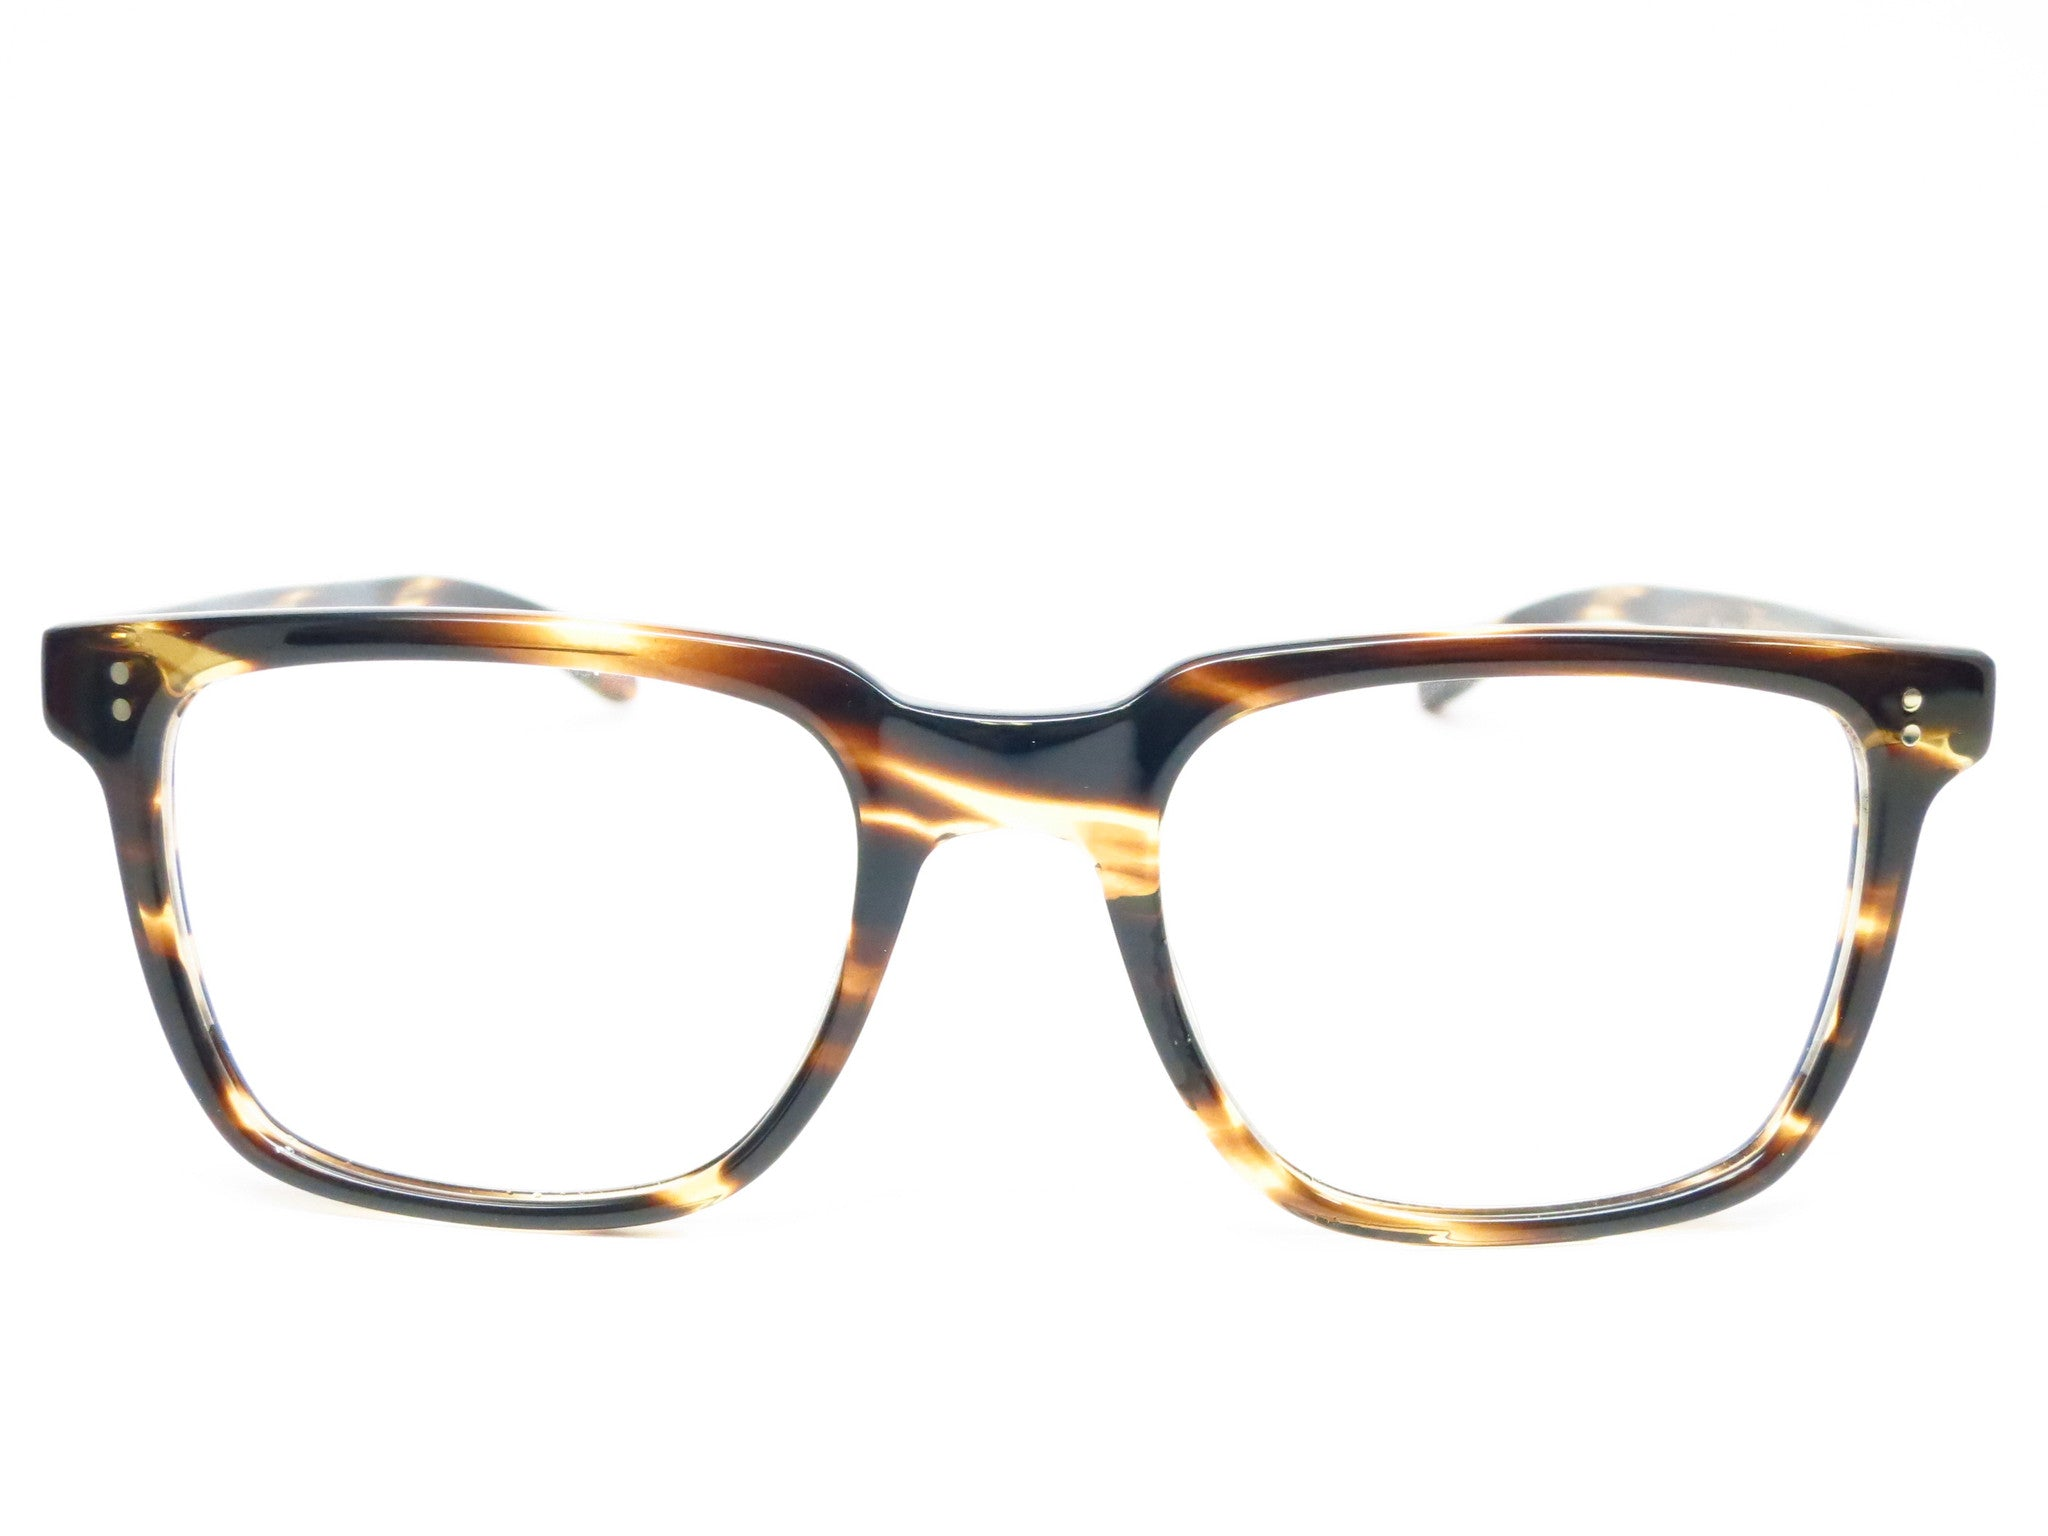 65fcc622acf ... Oliver Peoples OV 5031 NDG-1 1003 Cocobolo Eyeglasses - Eye Heart  Shades - Oliver ...